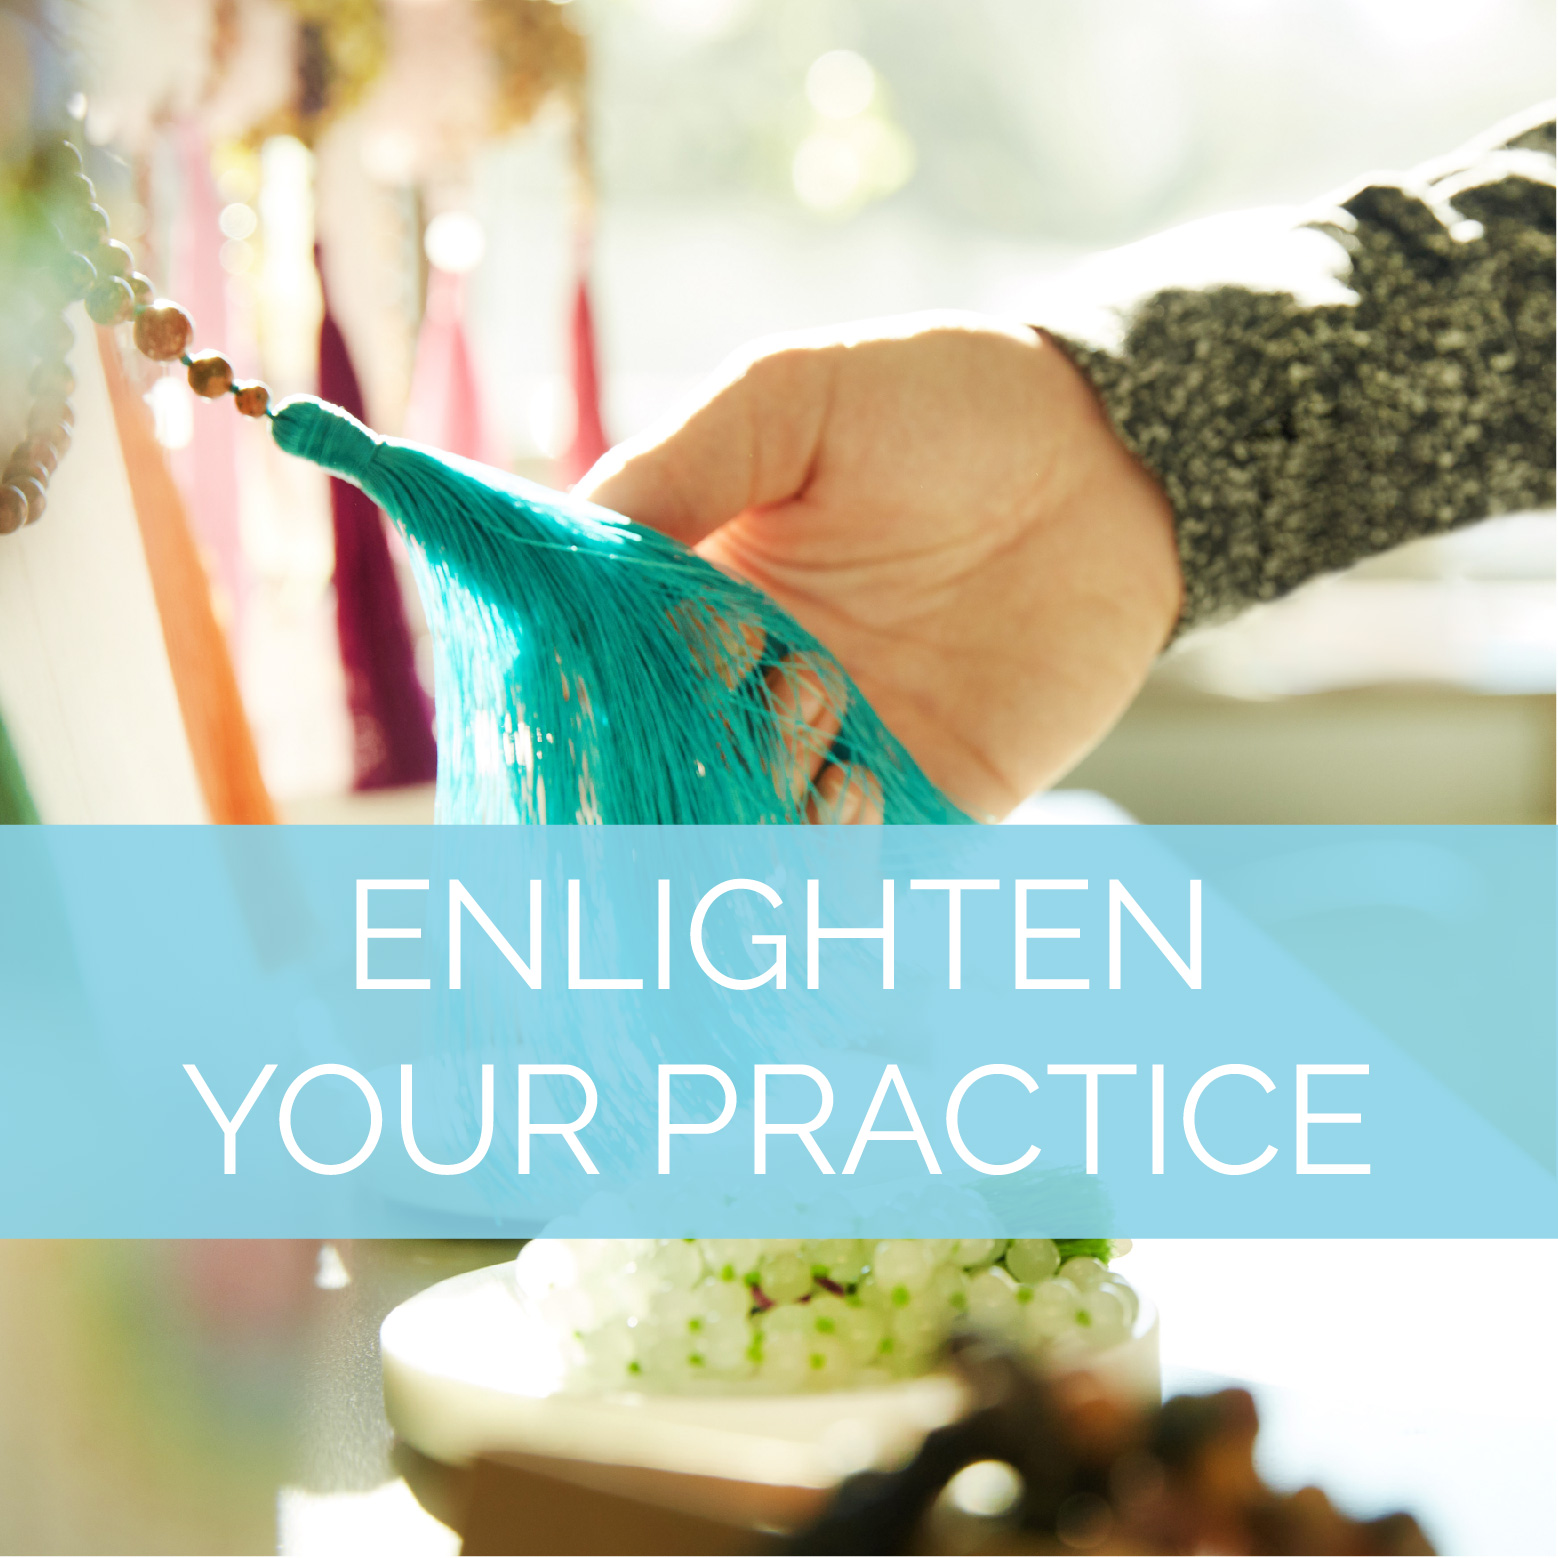 Enlighten Your Practice